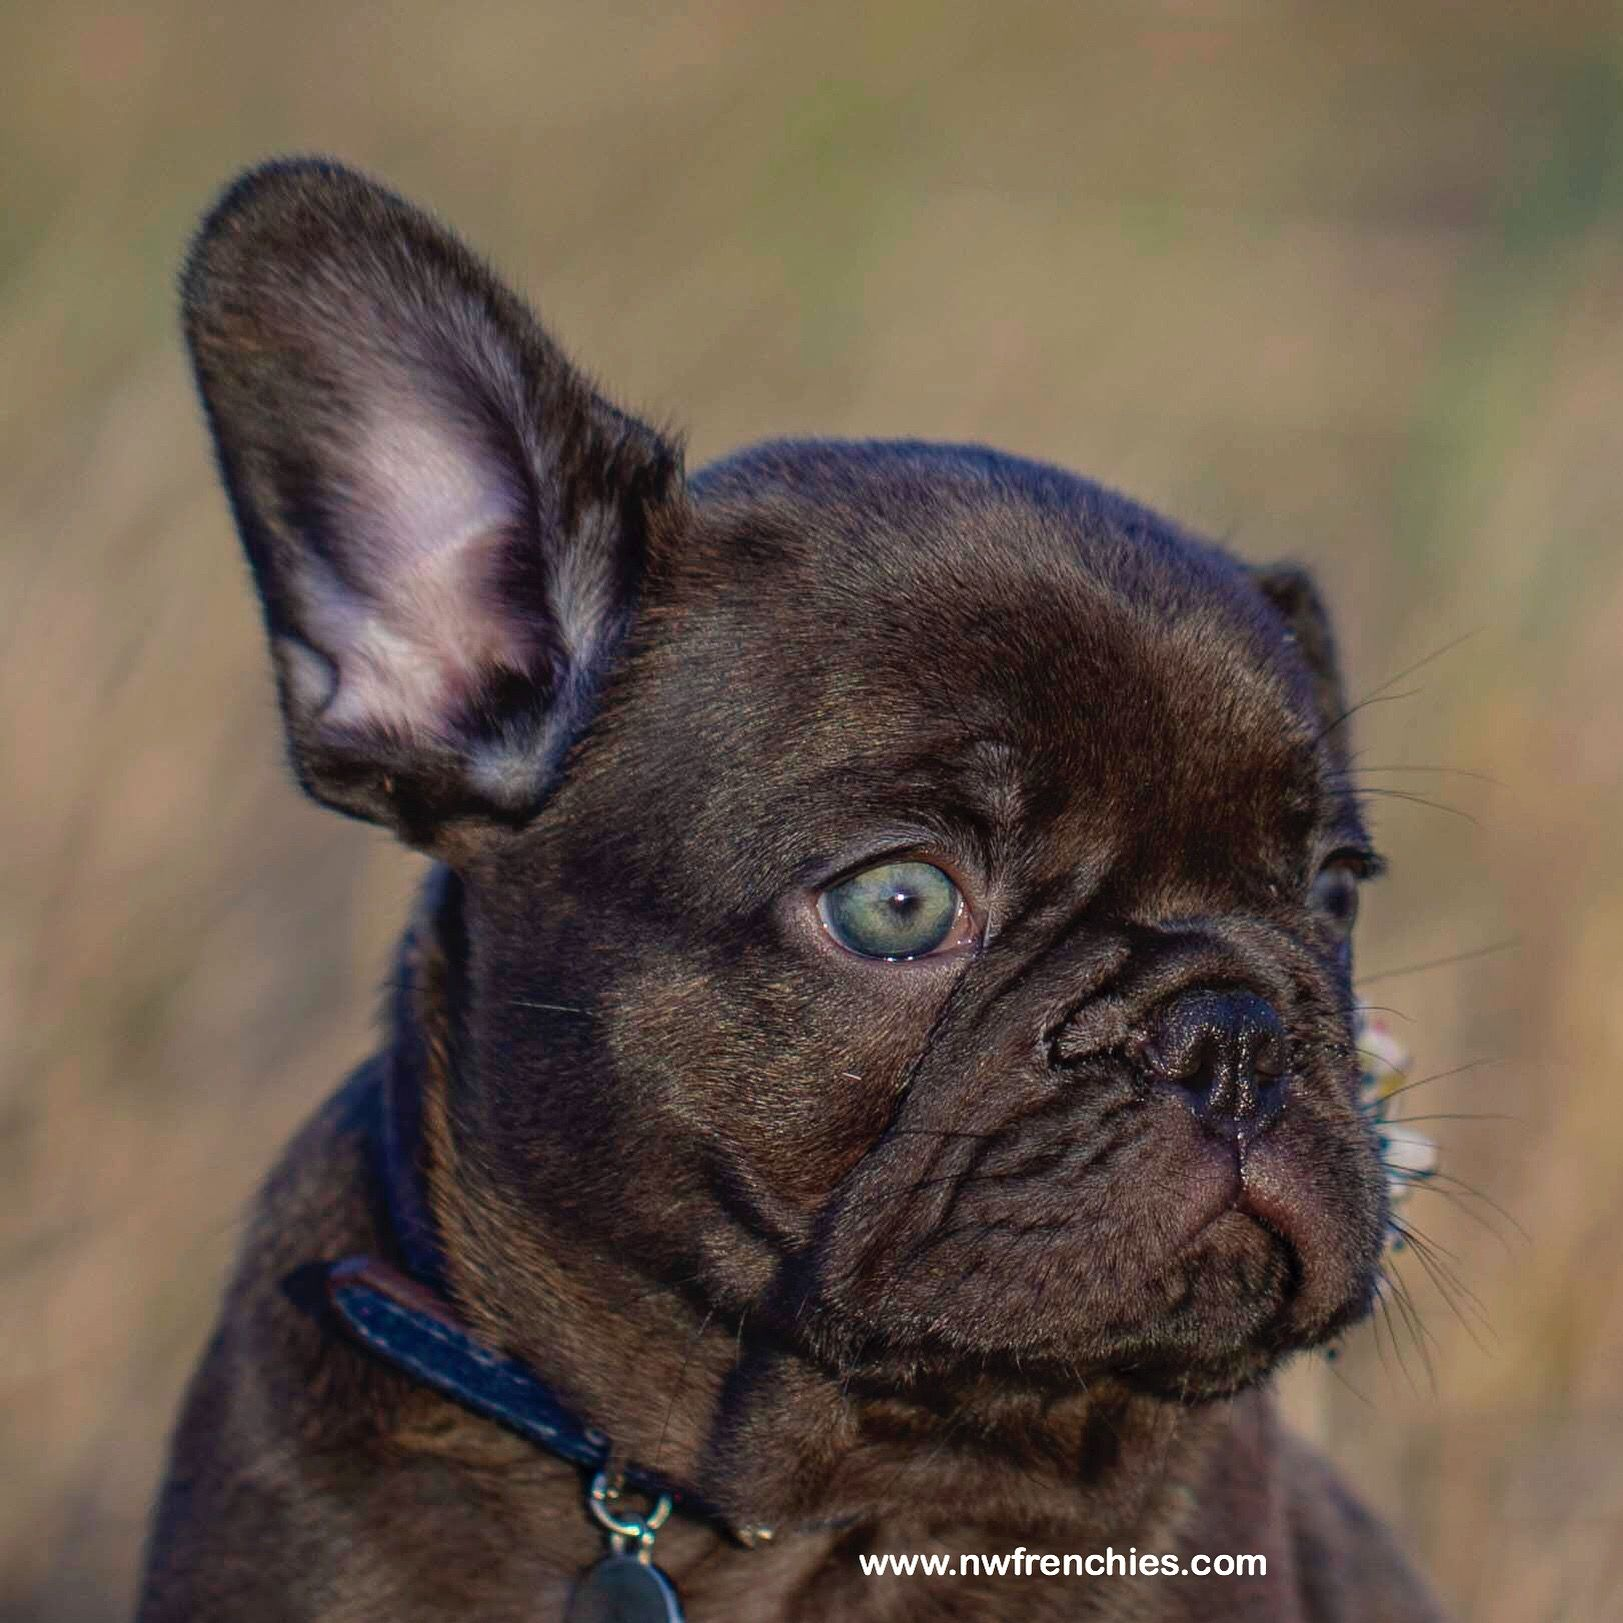 If interested in this Frenchie please submit my puppy